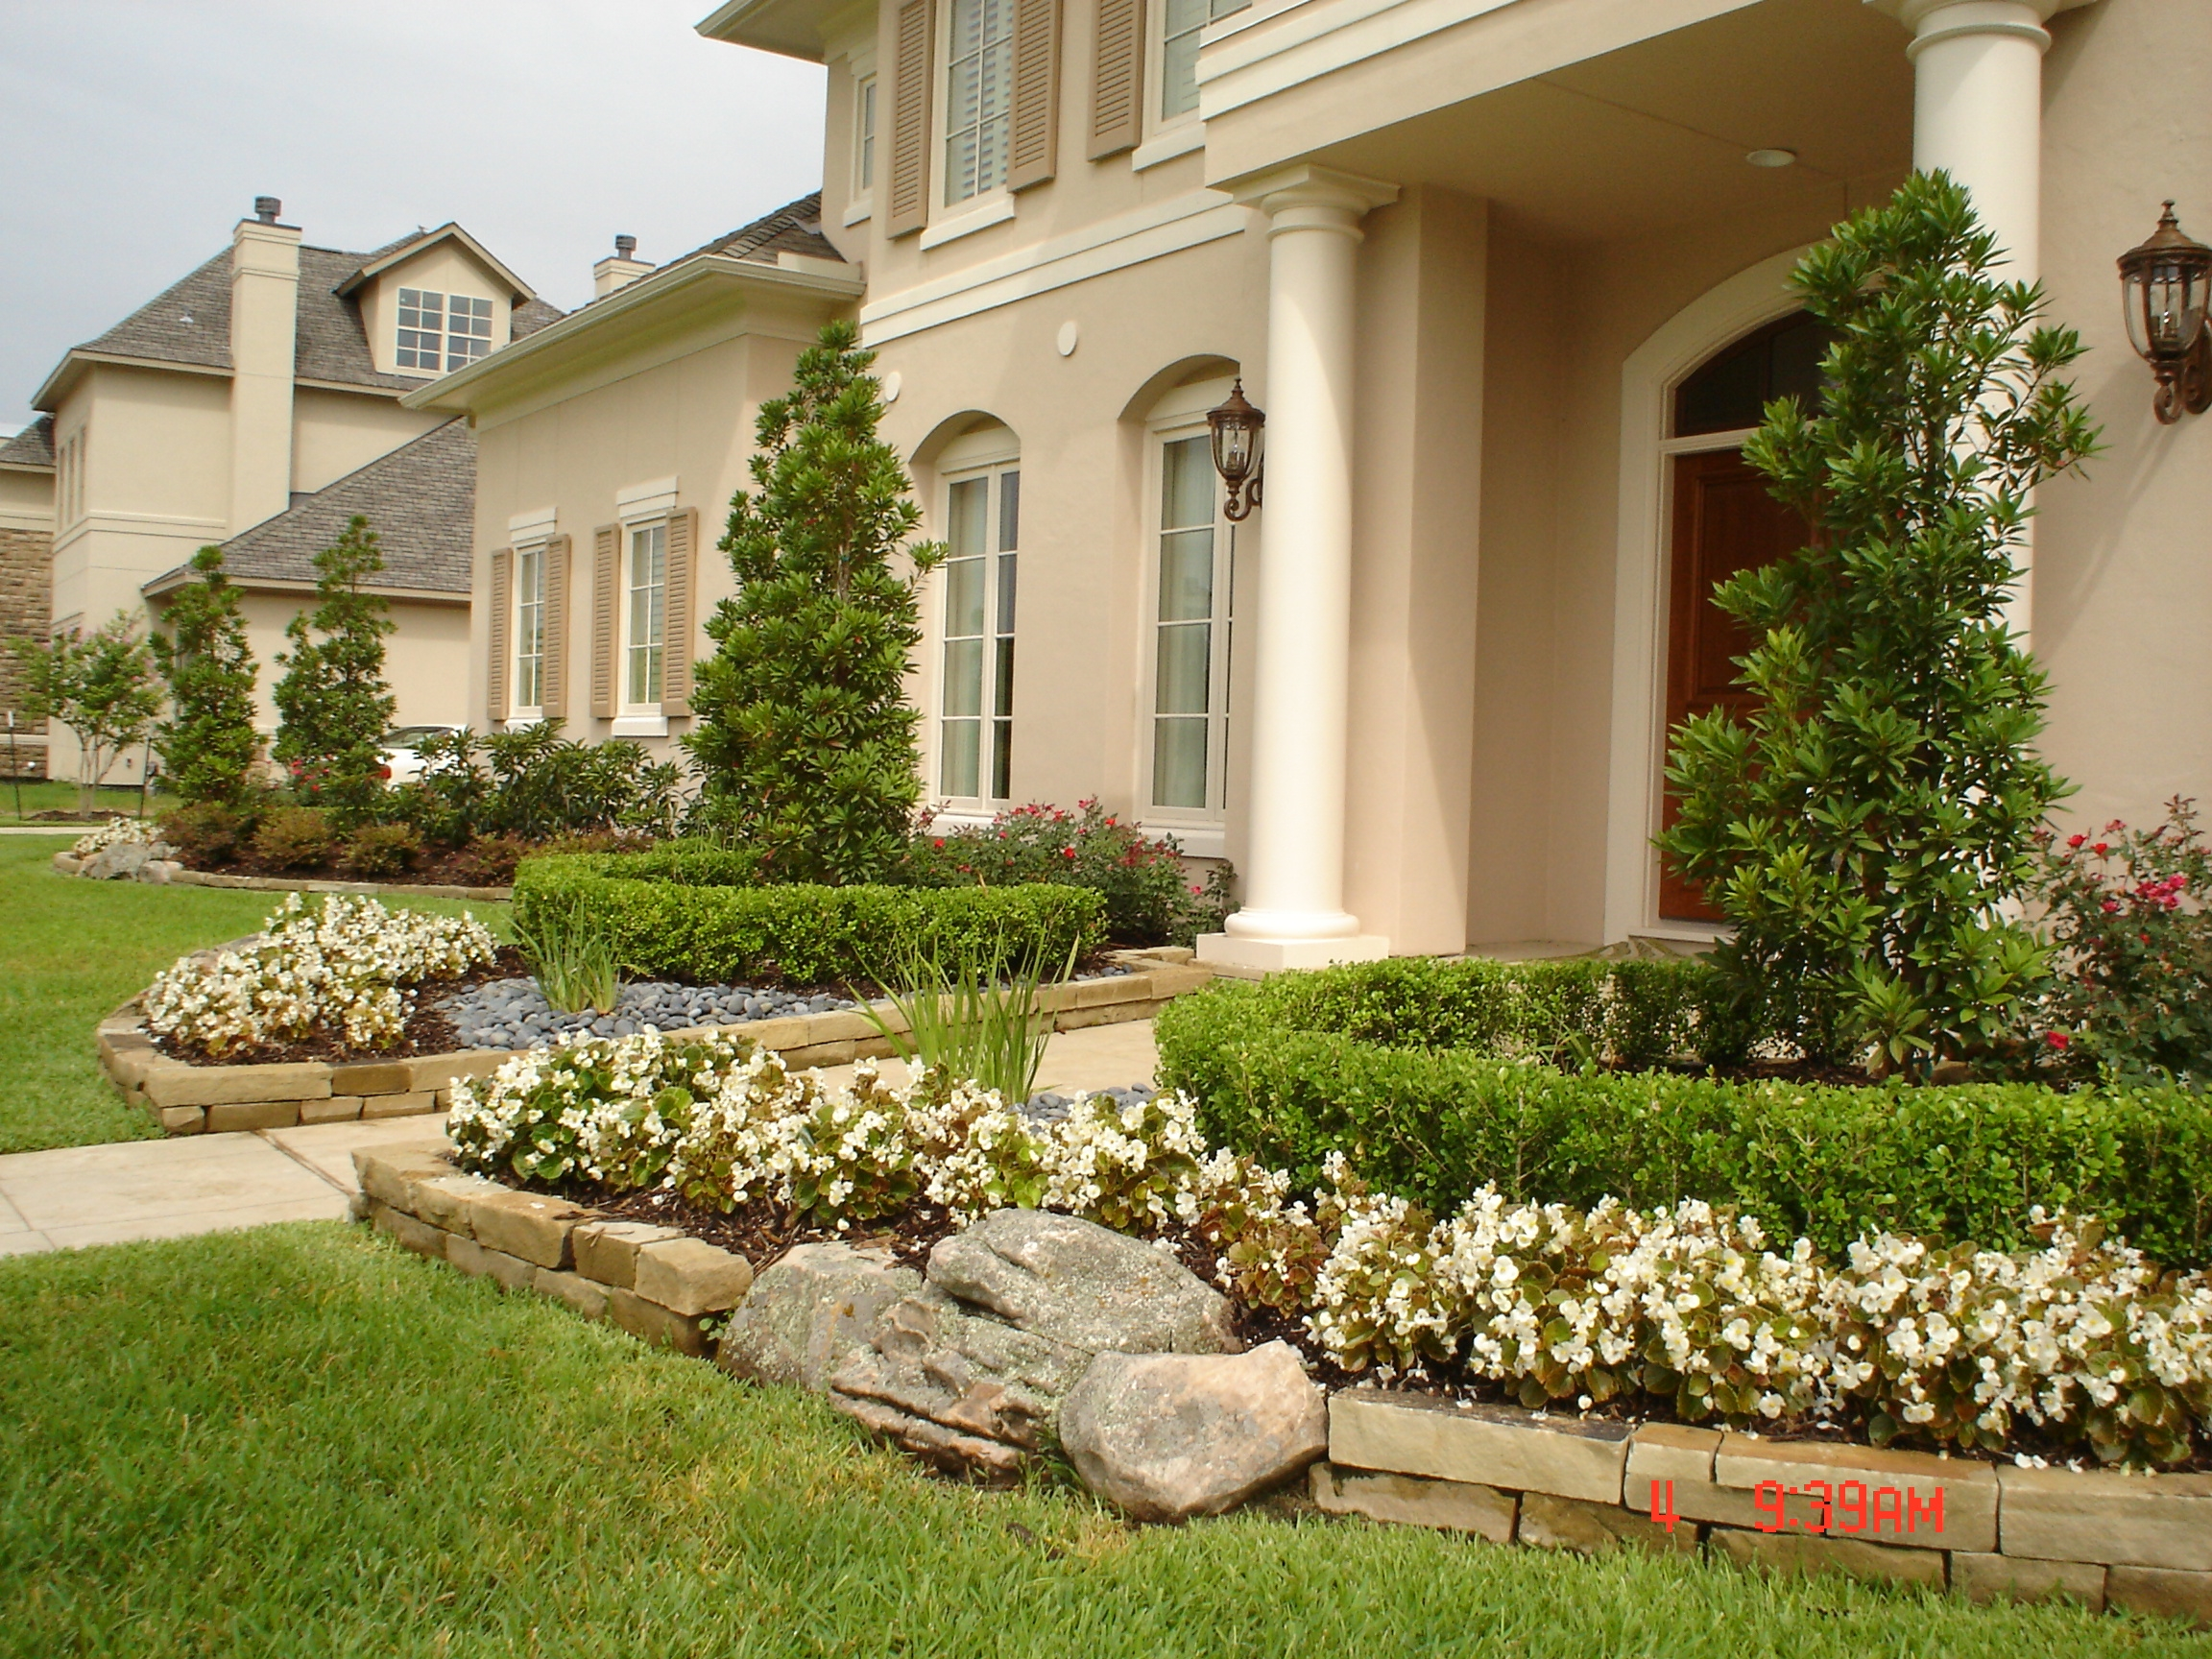 landscaping_34